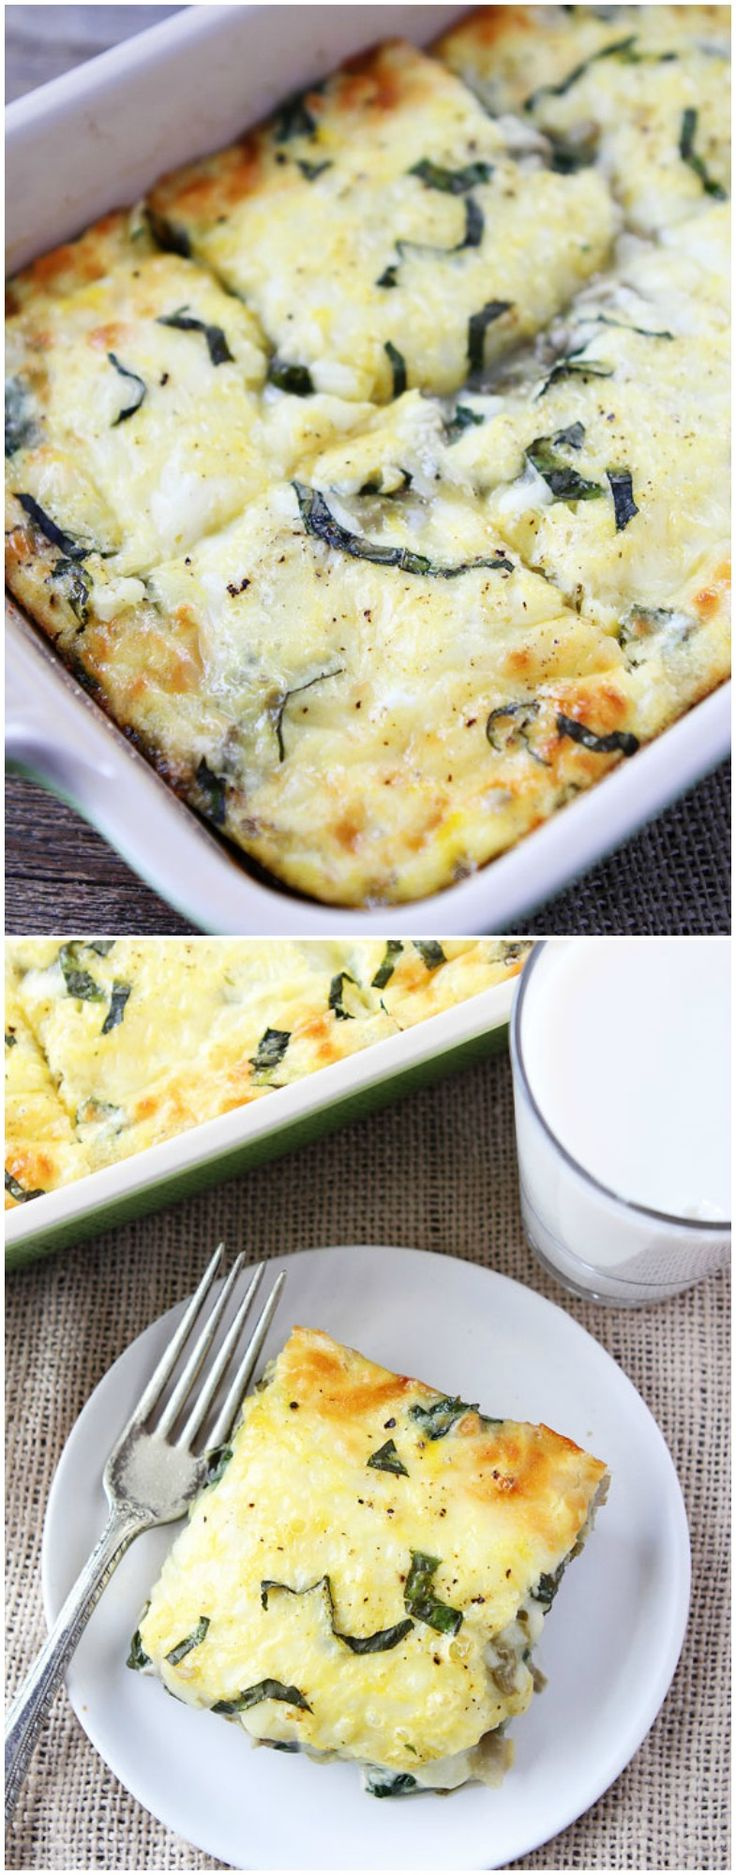 Spinach Artichoke Egg Casserole Recipe on twopeasandtheirpod.com.. Love this easy breakfast casserole! It's great for entertaining too!